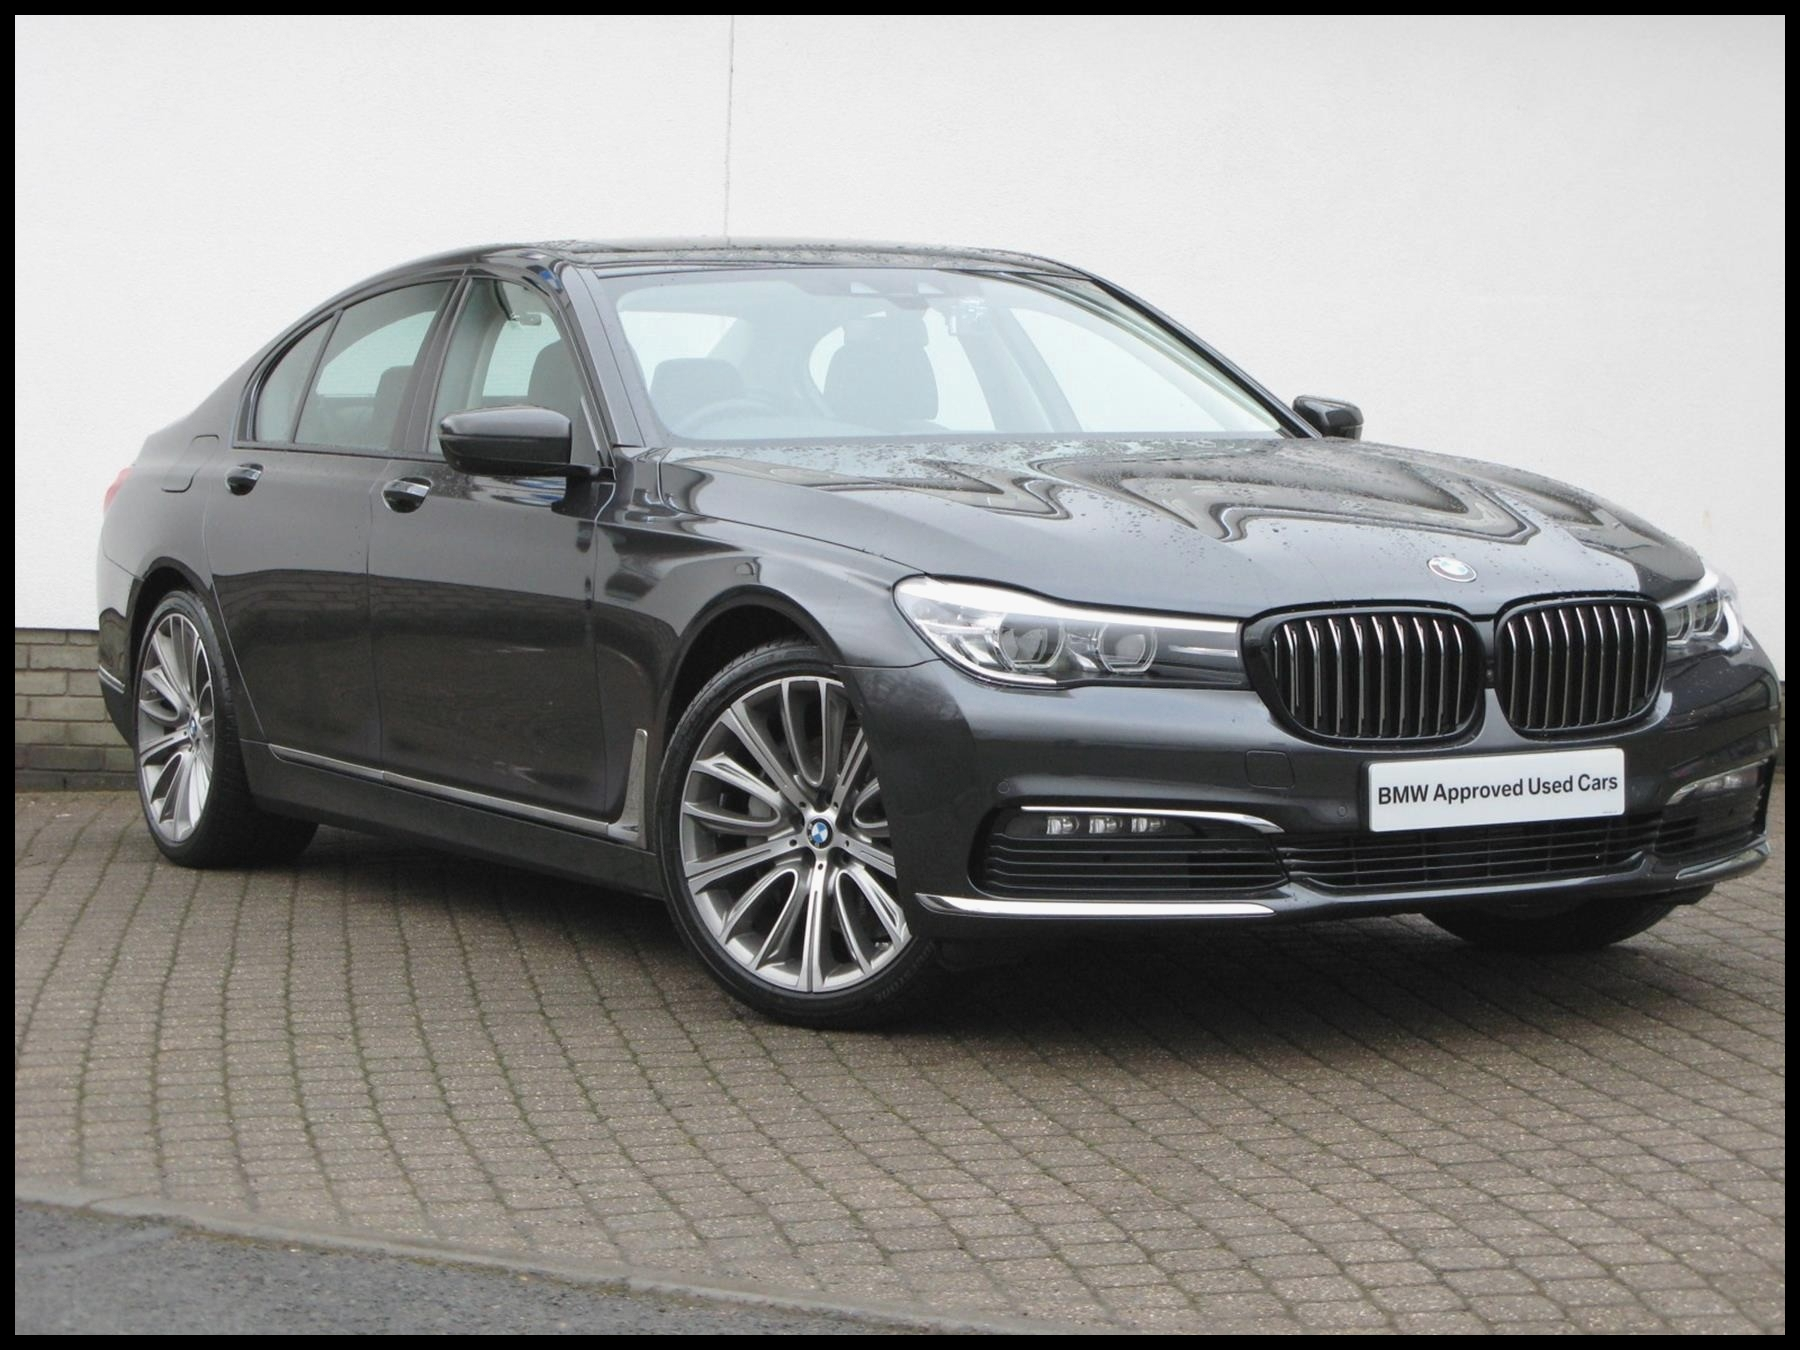 Bmw M7 for Sale Latest Used 2017 Bmw 7 Series G11 740d Xdrive Saloon B57 3